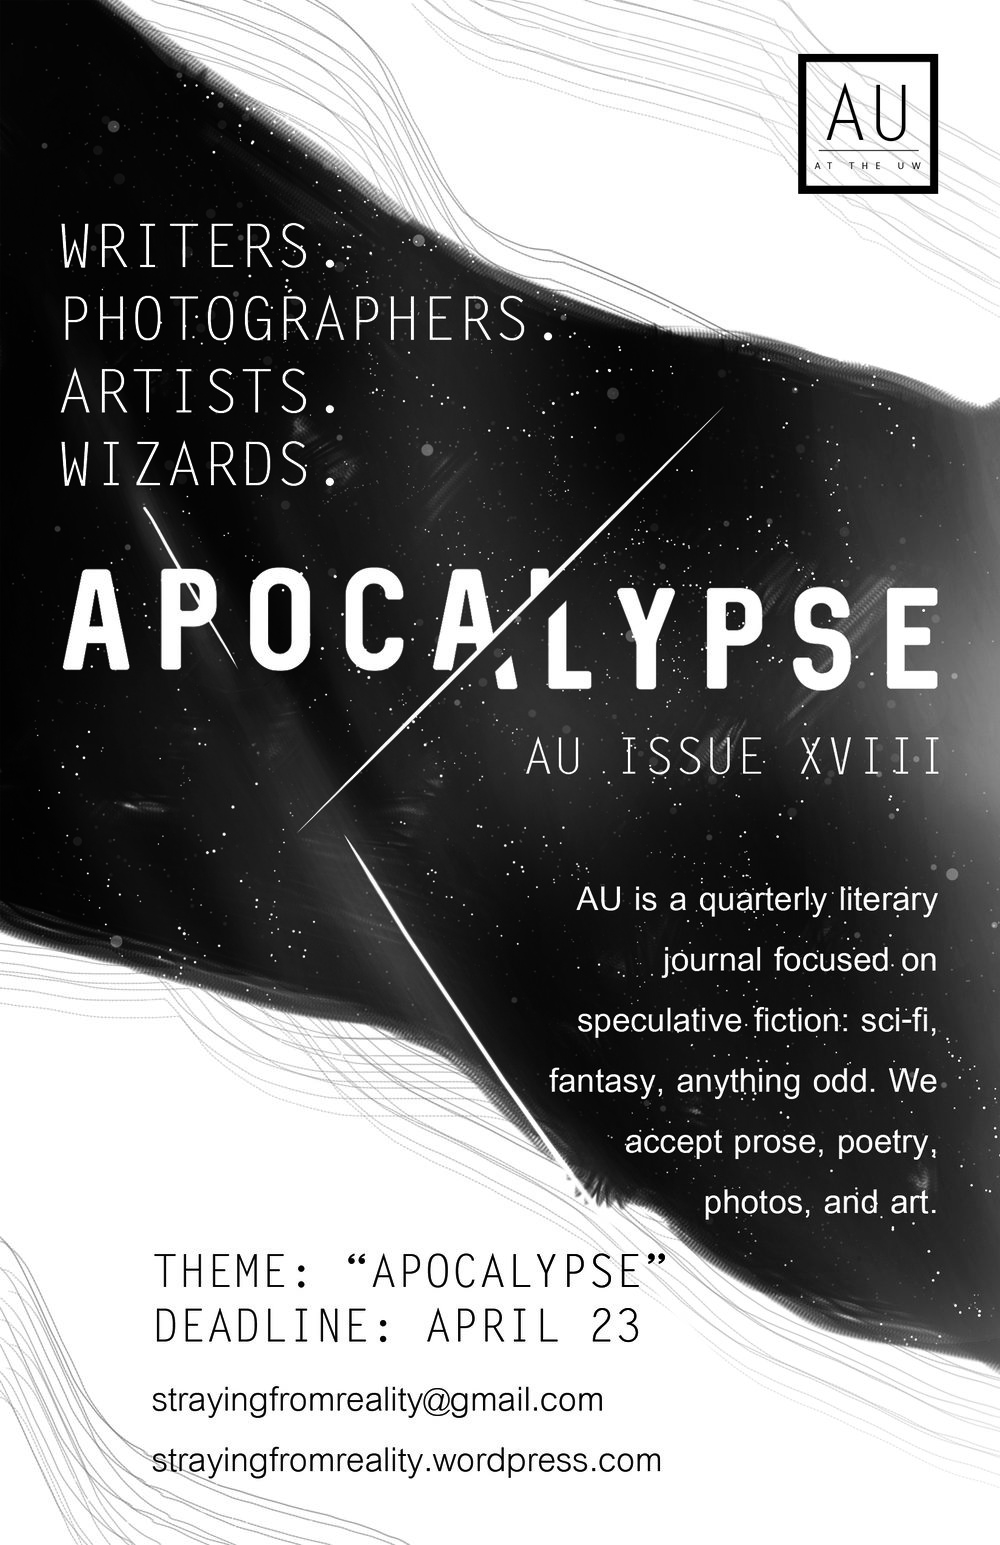 Issue XVIII Flyer: Apocalypse